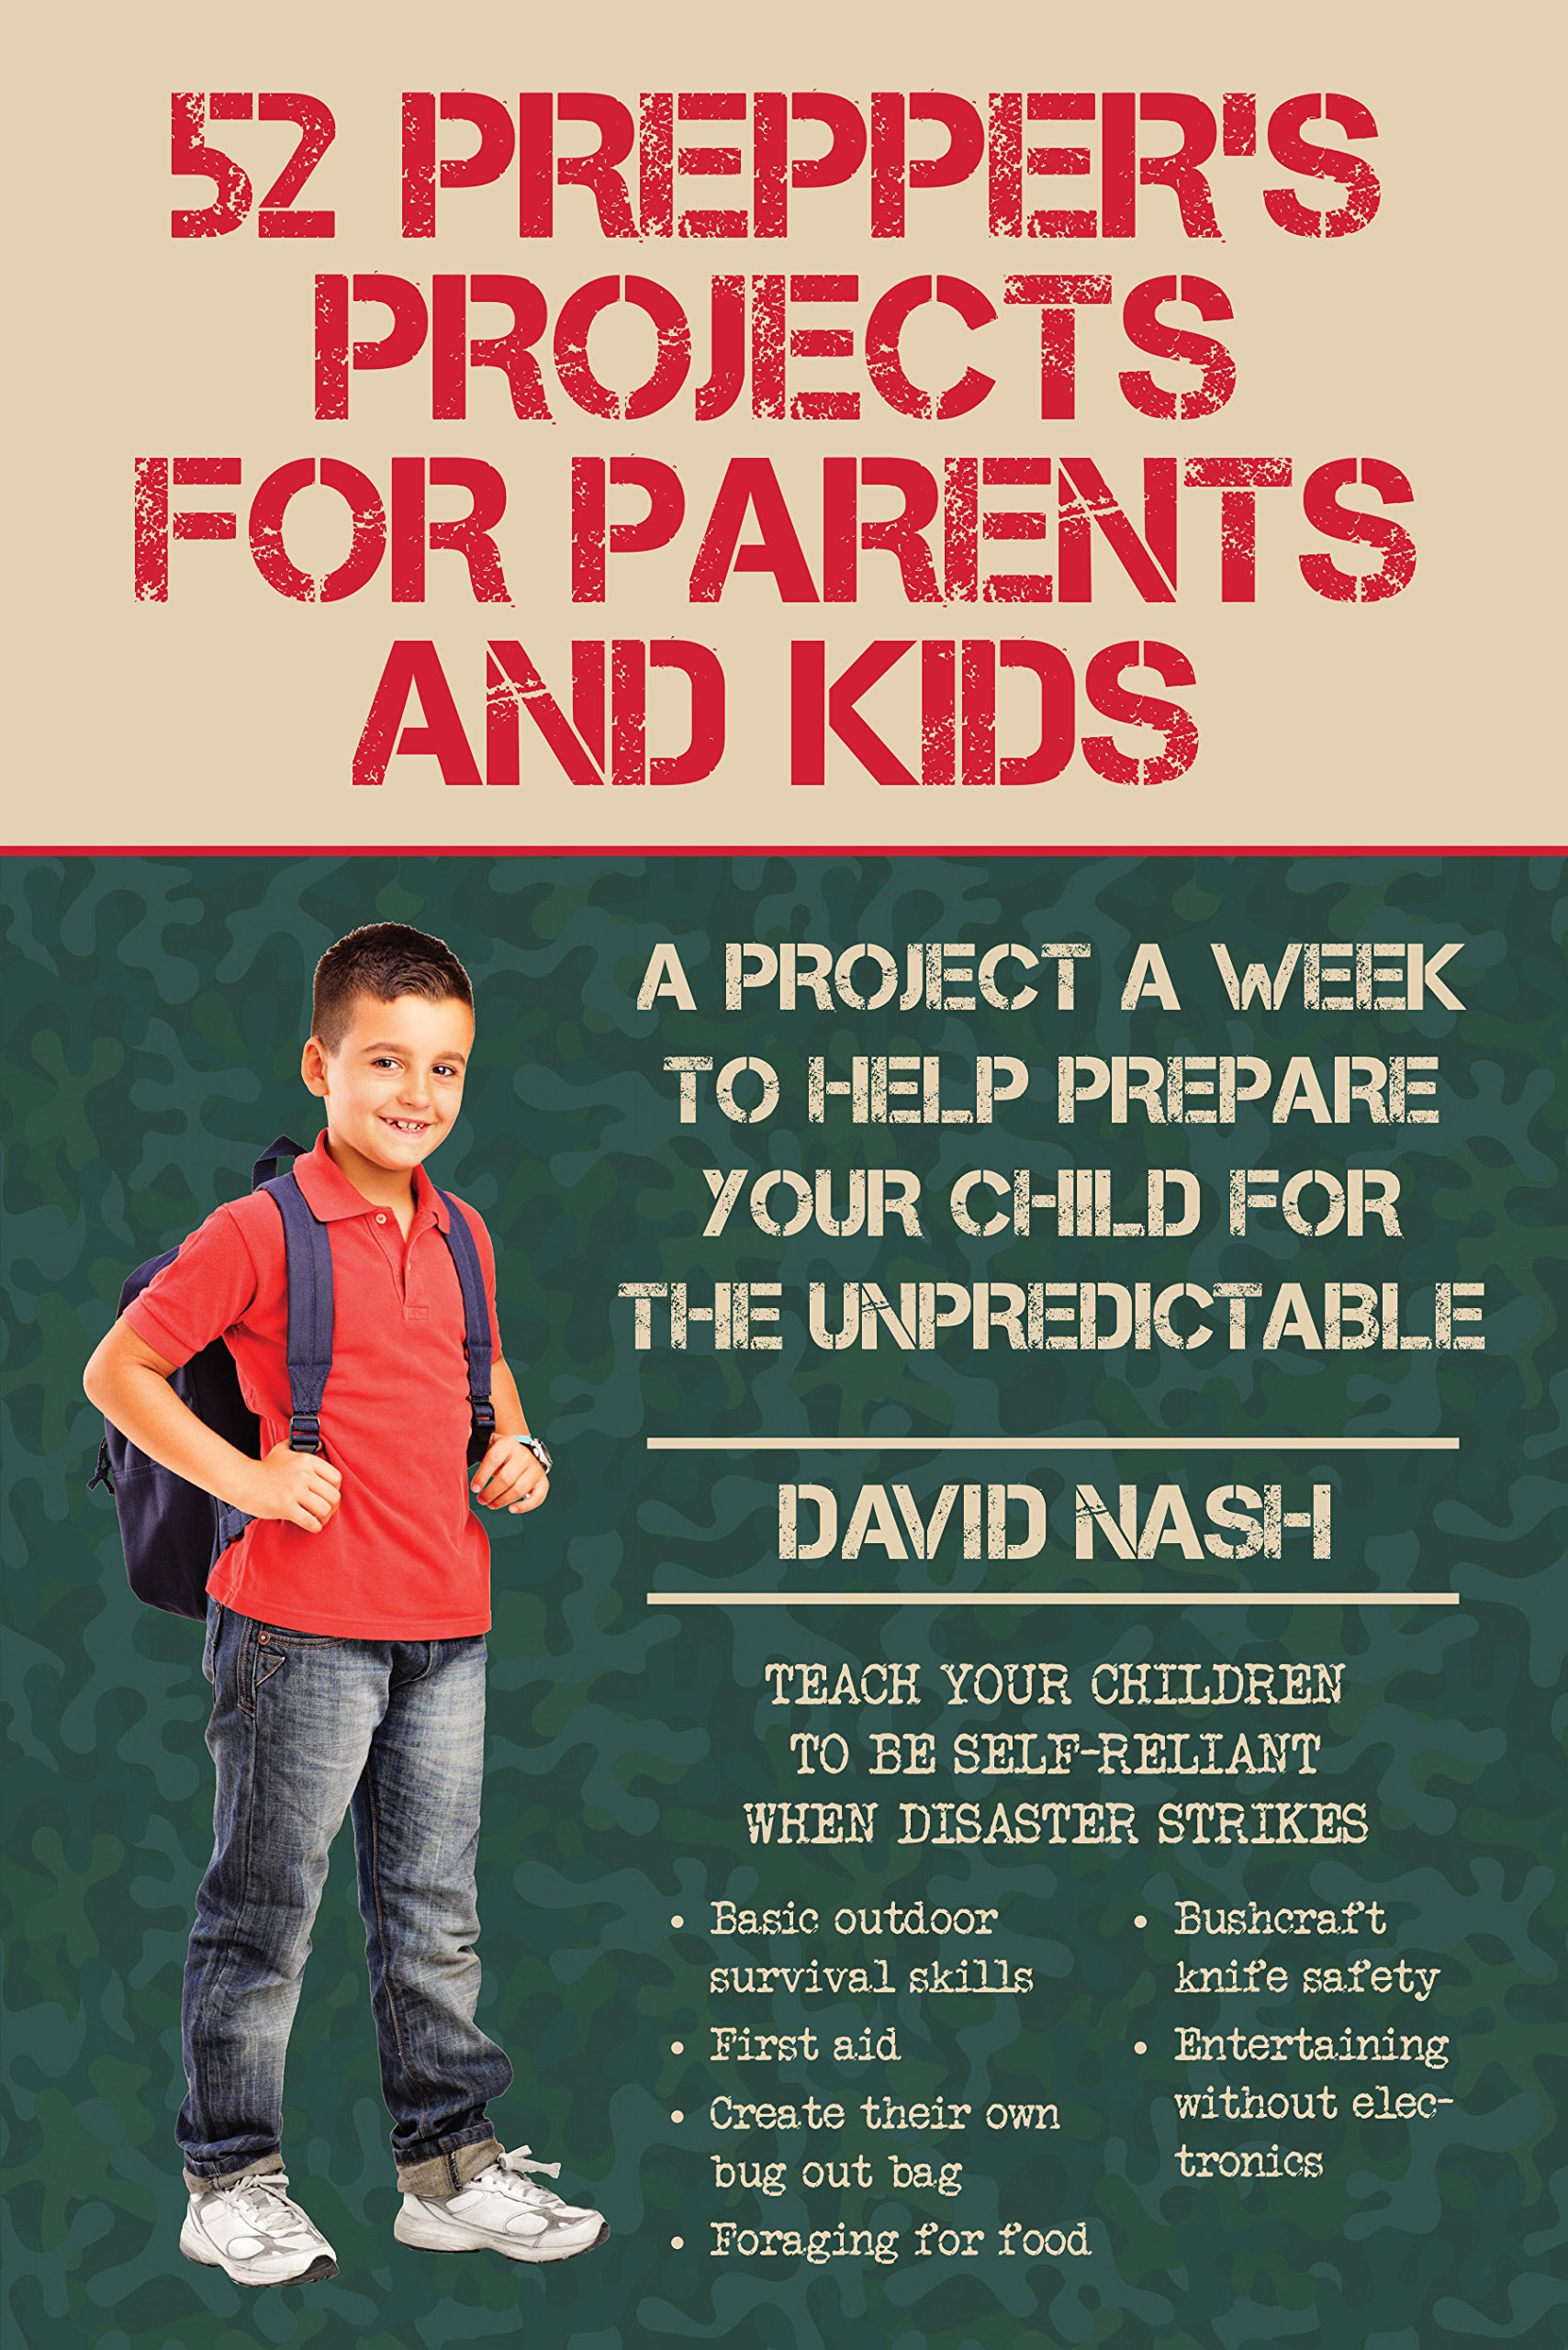 Preppers Projects Parents Kids Unpredictable product image